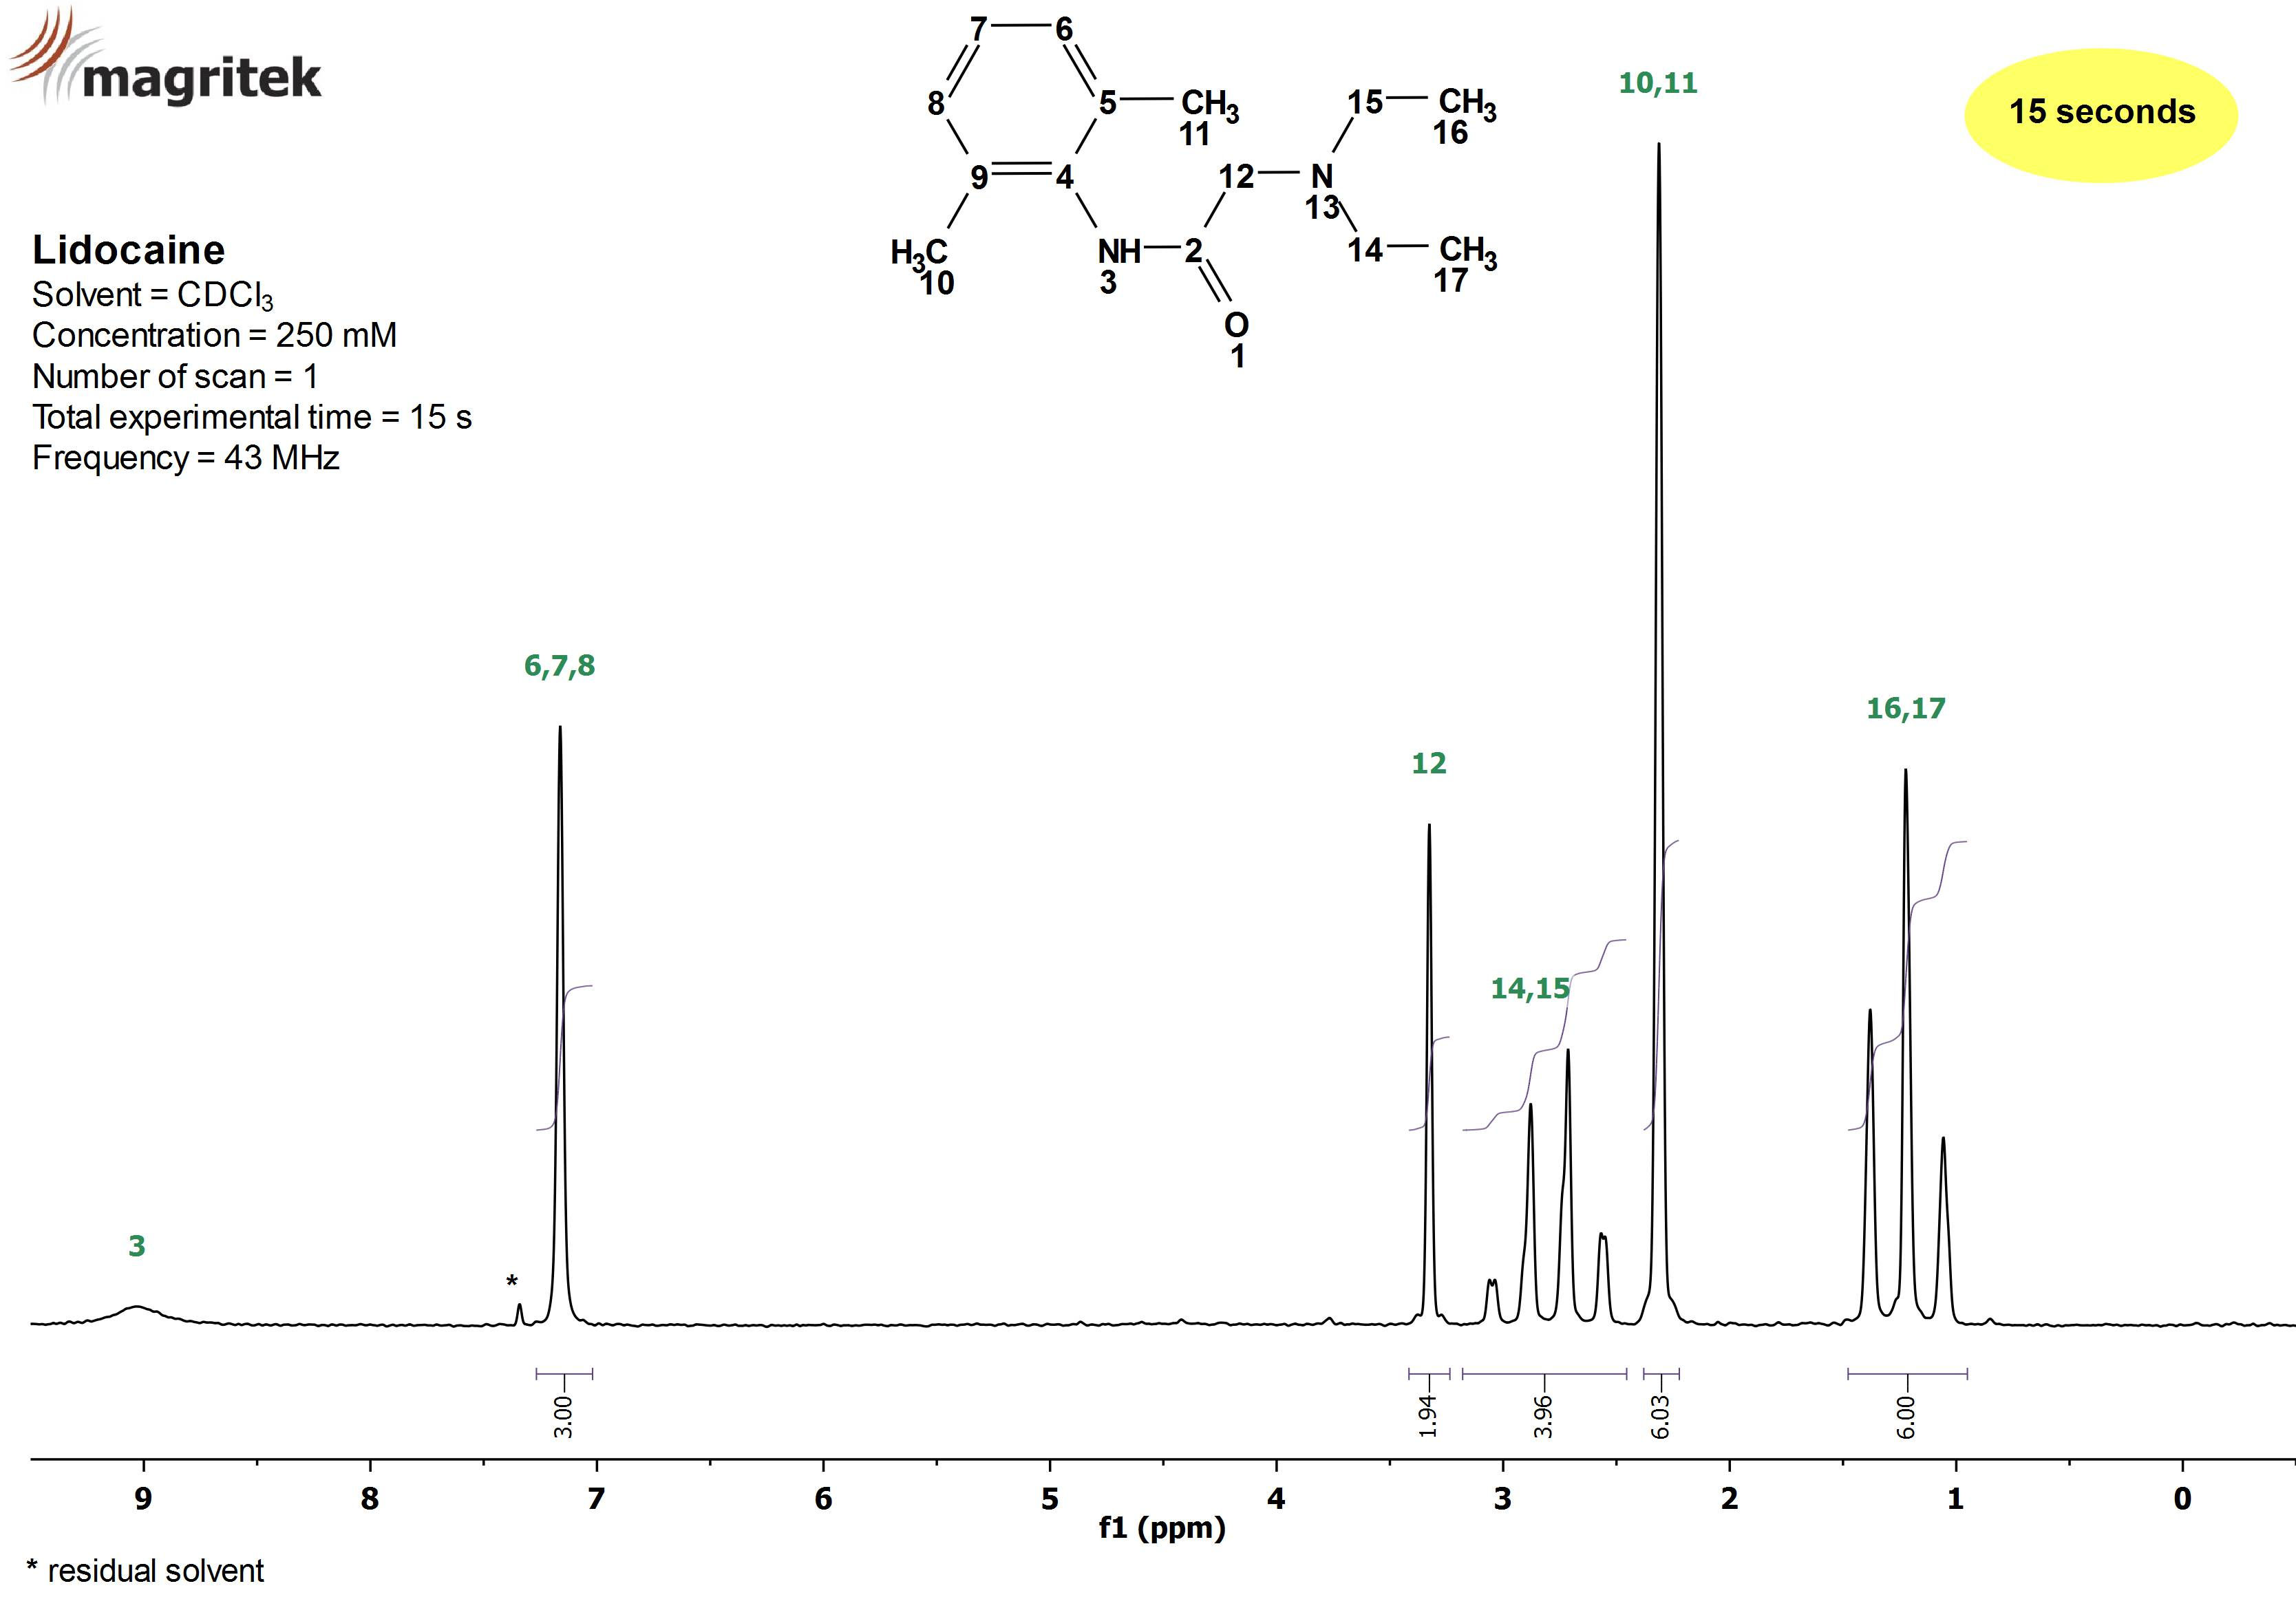 1h And 13c Peak Assignments Of Quinine Using 1d And 2d Nmr Methods